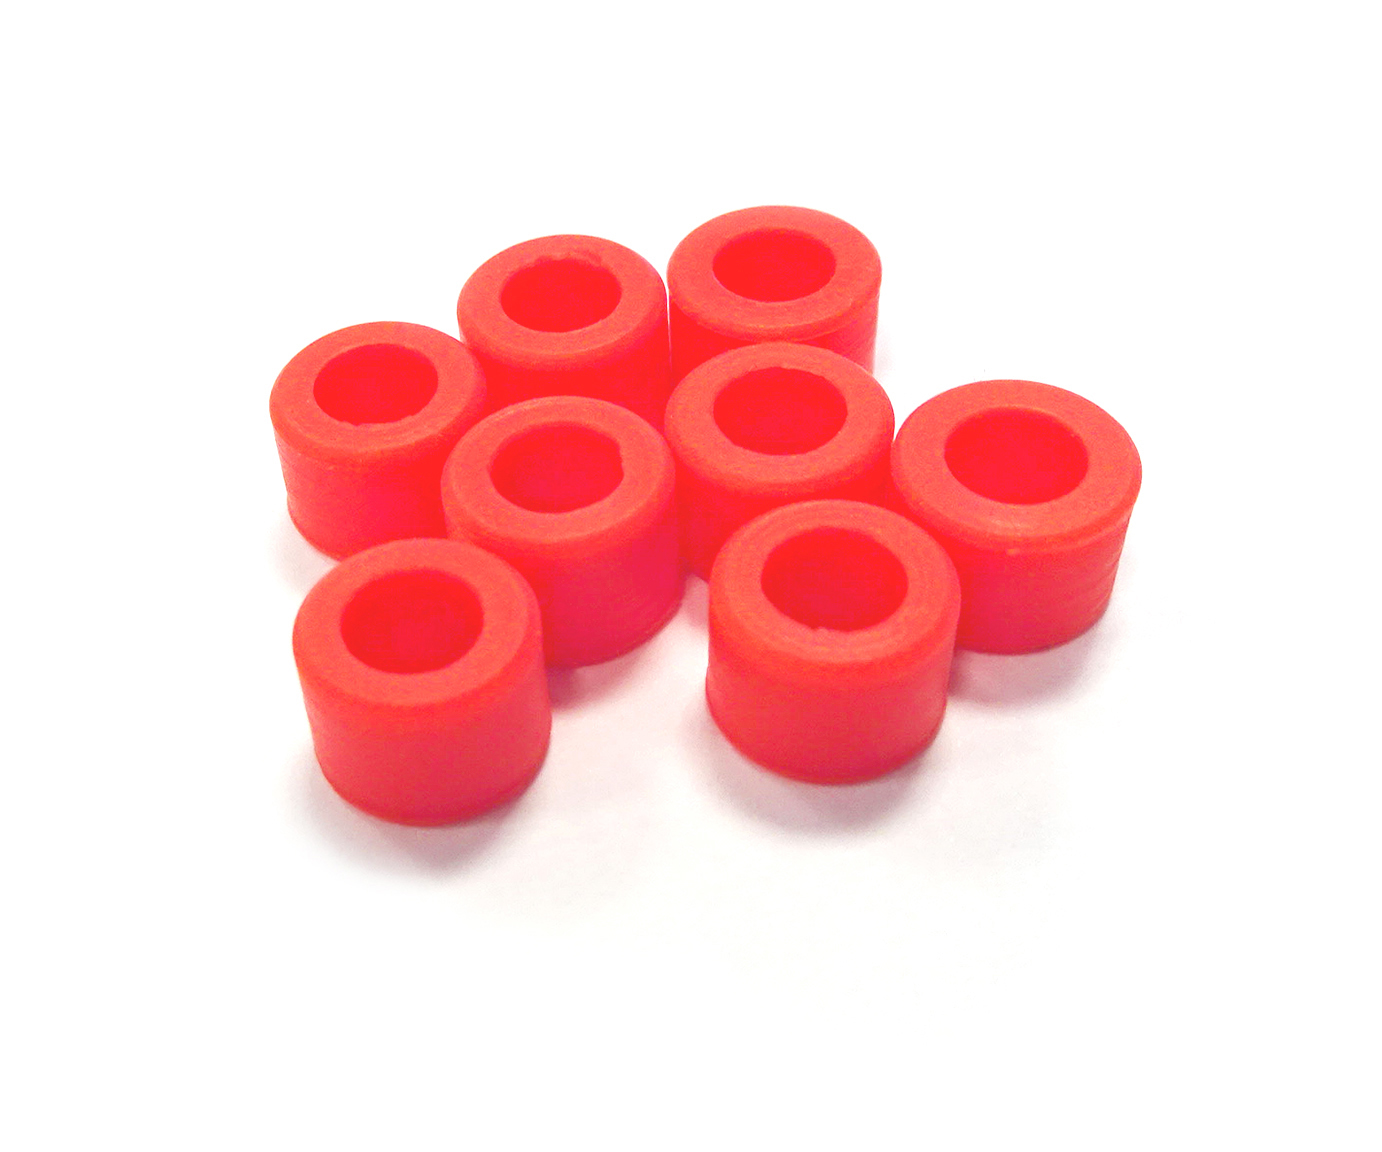 Instrument Ring - Small Red - 8pcs